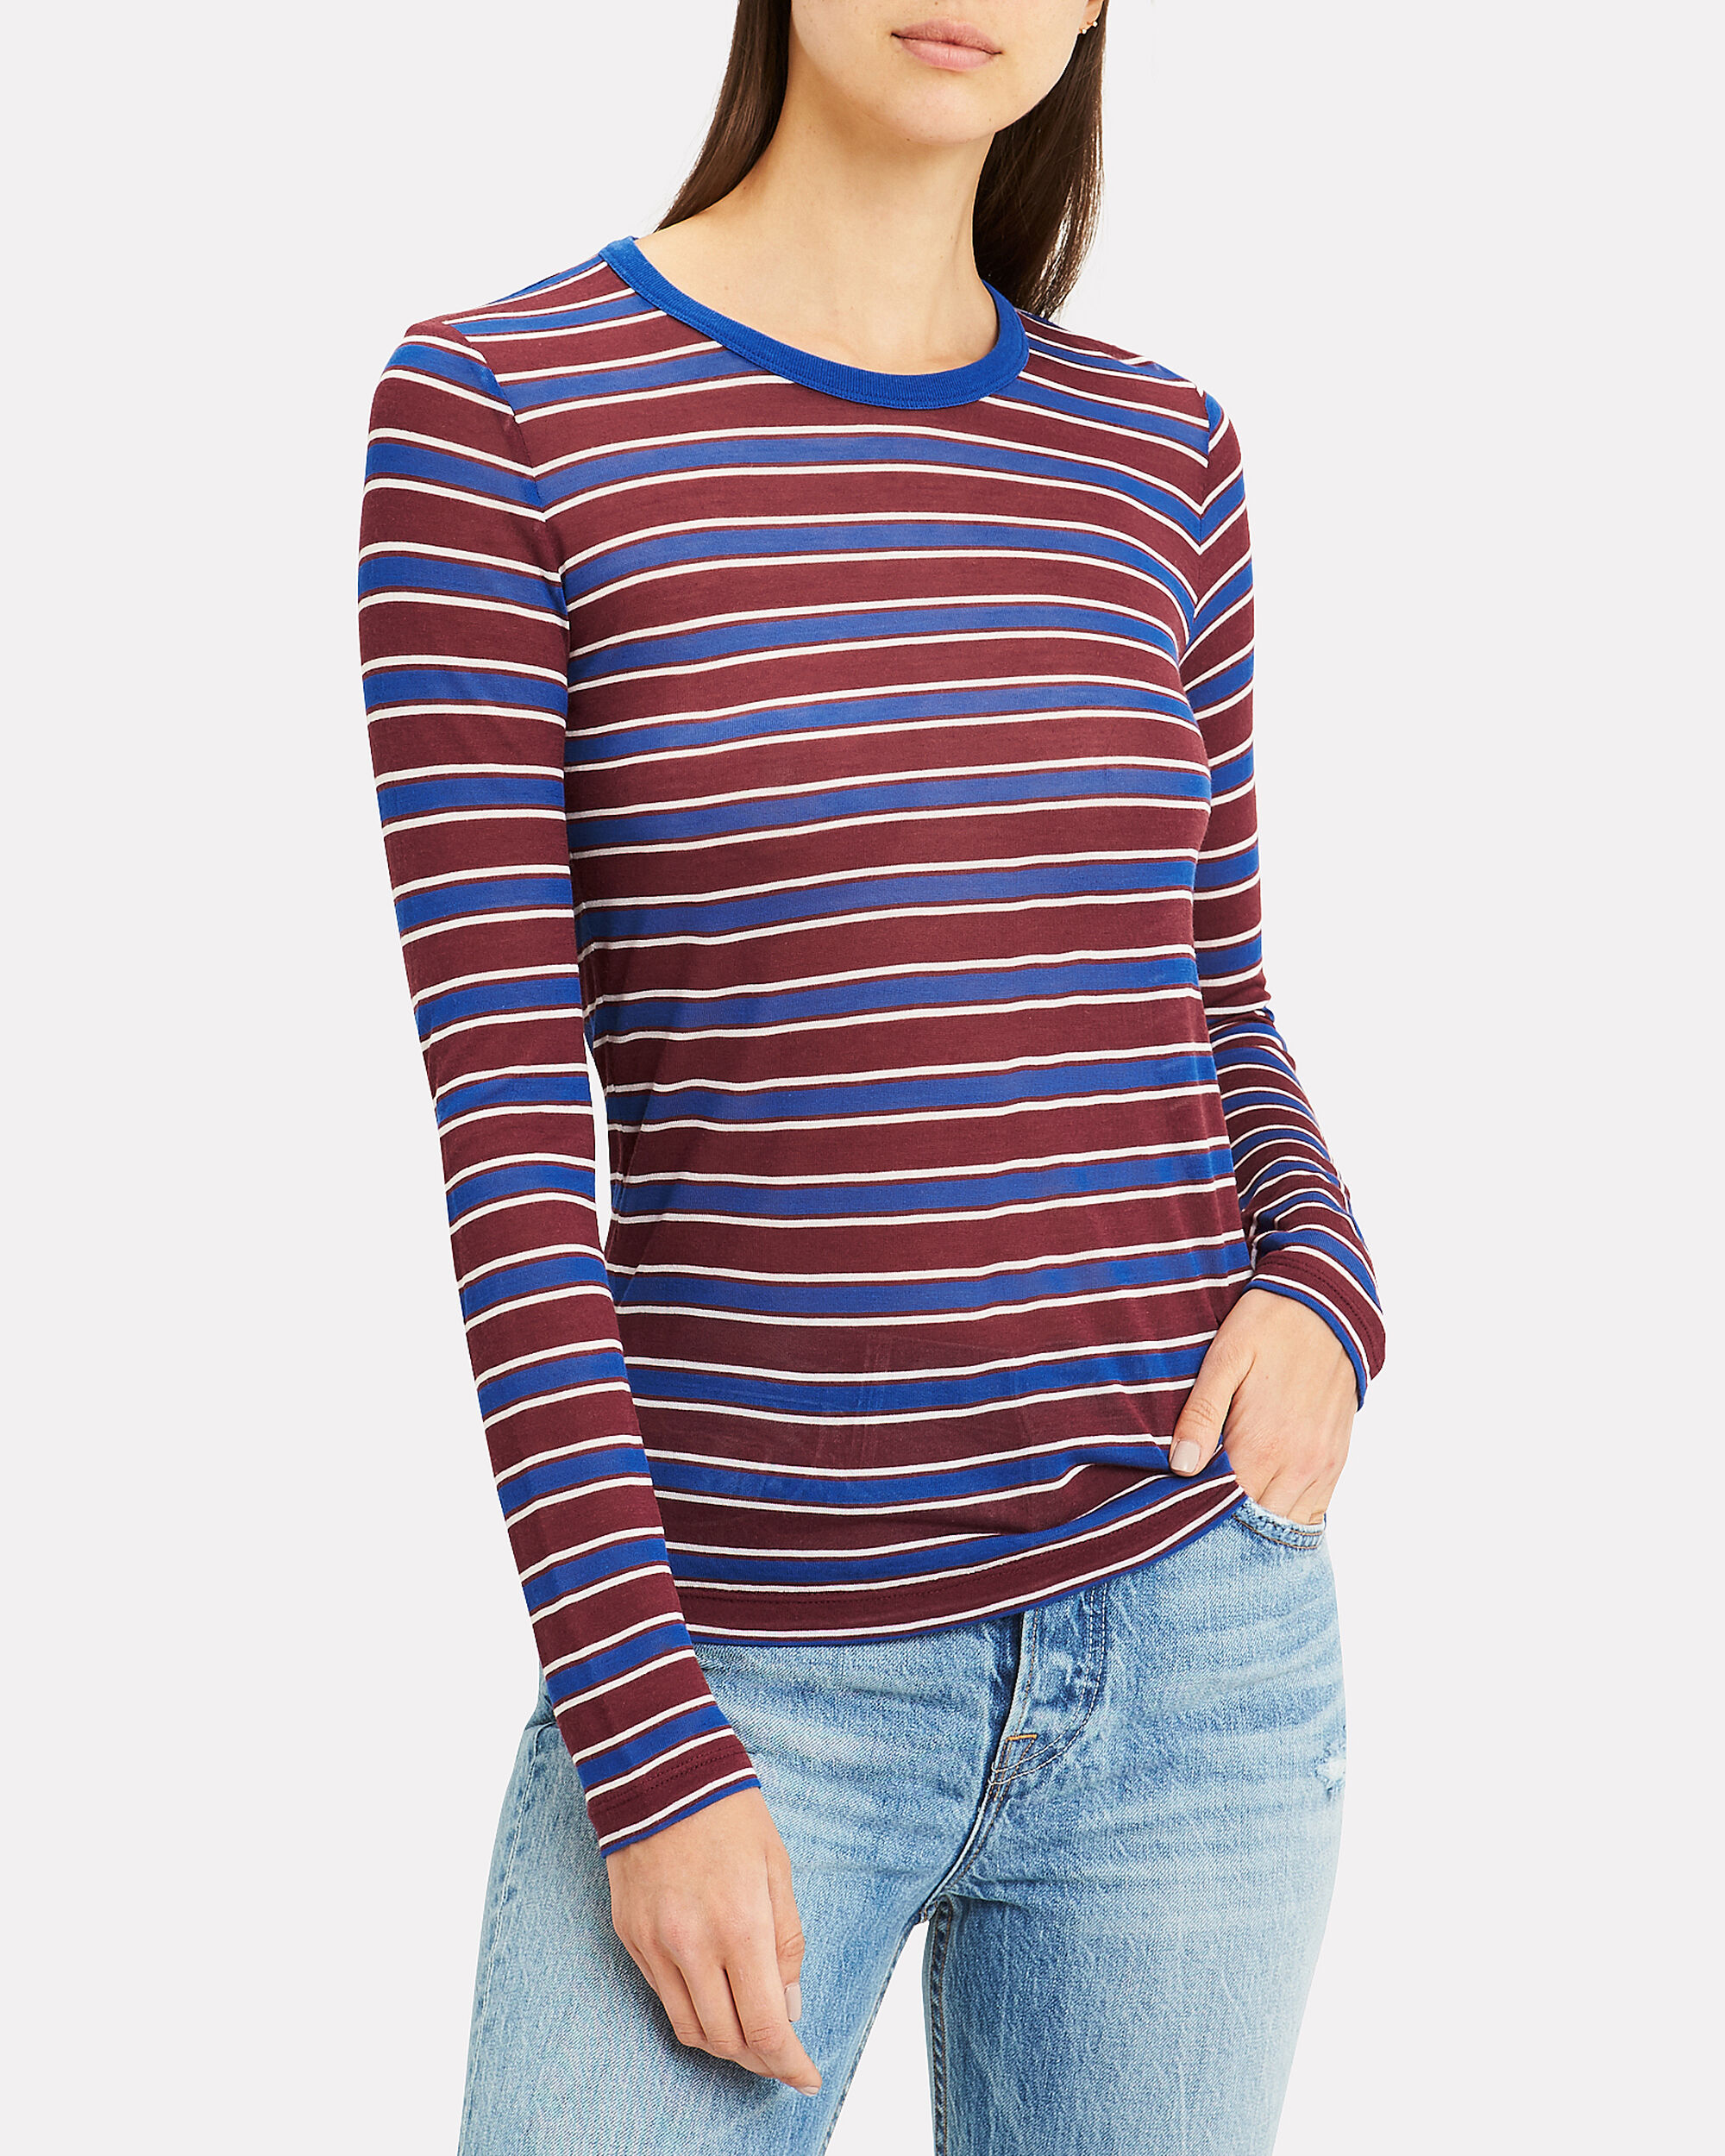 Avery Stripe Top, BURGUNDY/BLUE/STRIPE, hi-res